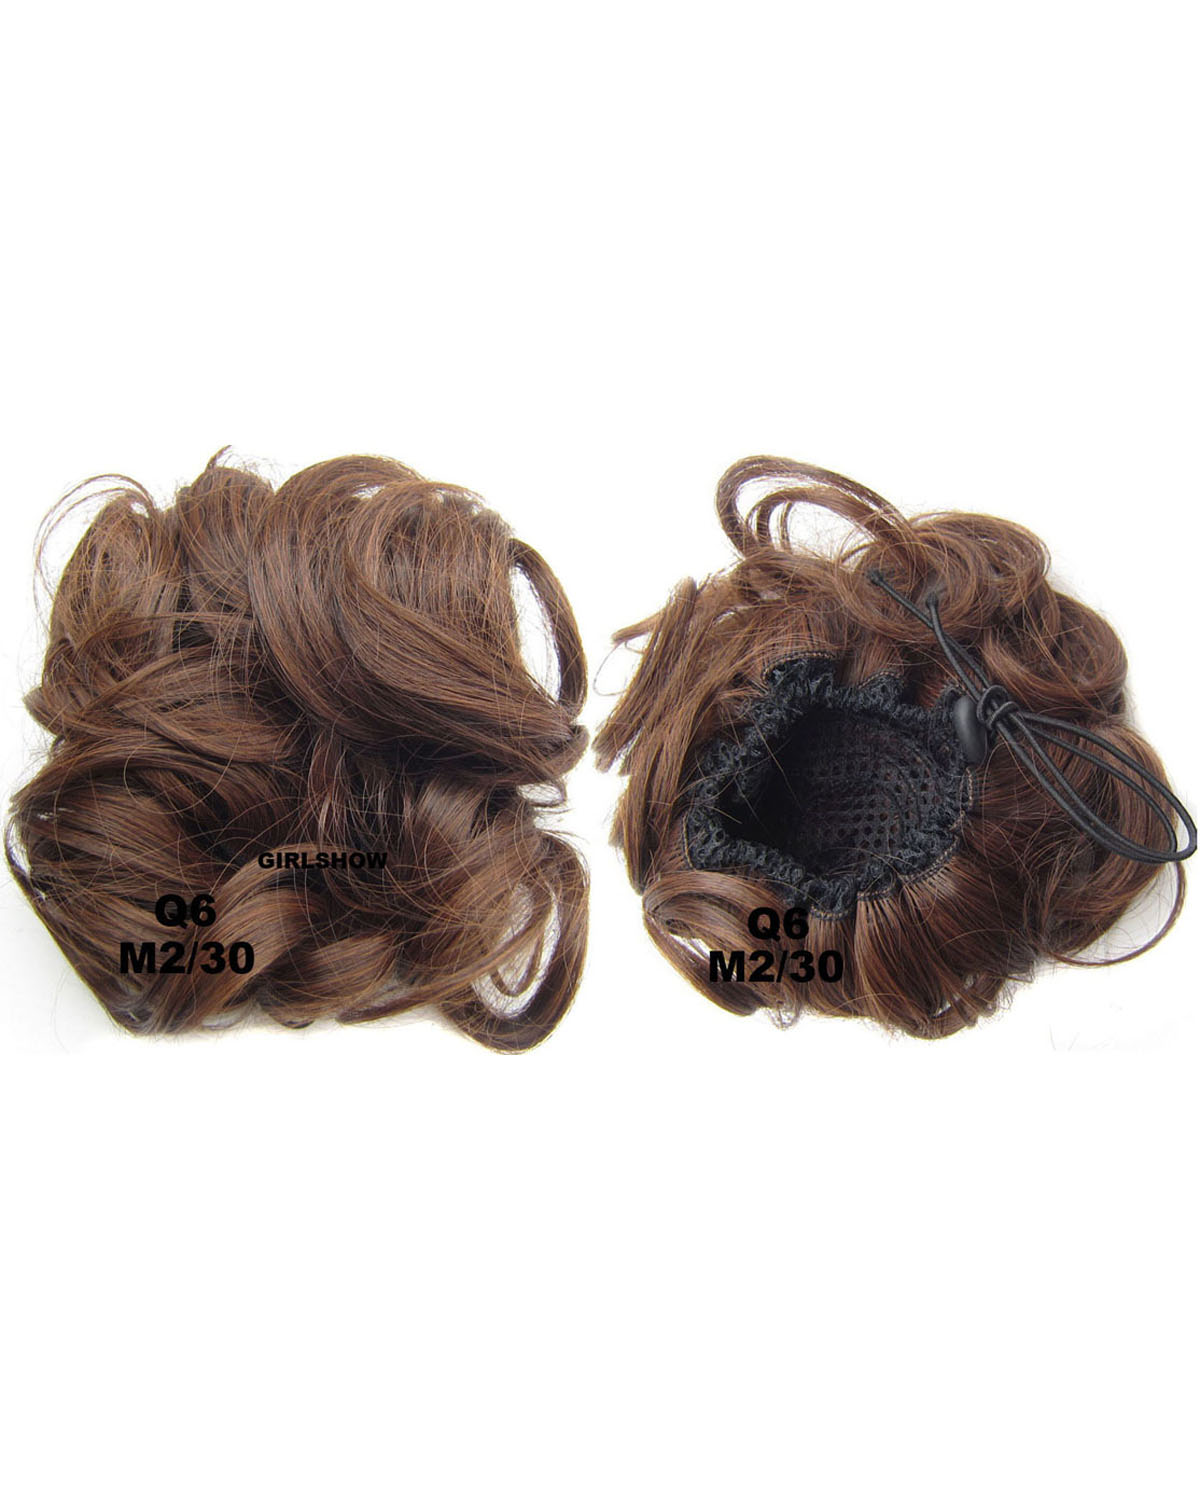 Ladies Grand Curly and Short Hair Buns Drawstring Synthetic Hair Extension Bride Scrunchies M2/30